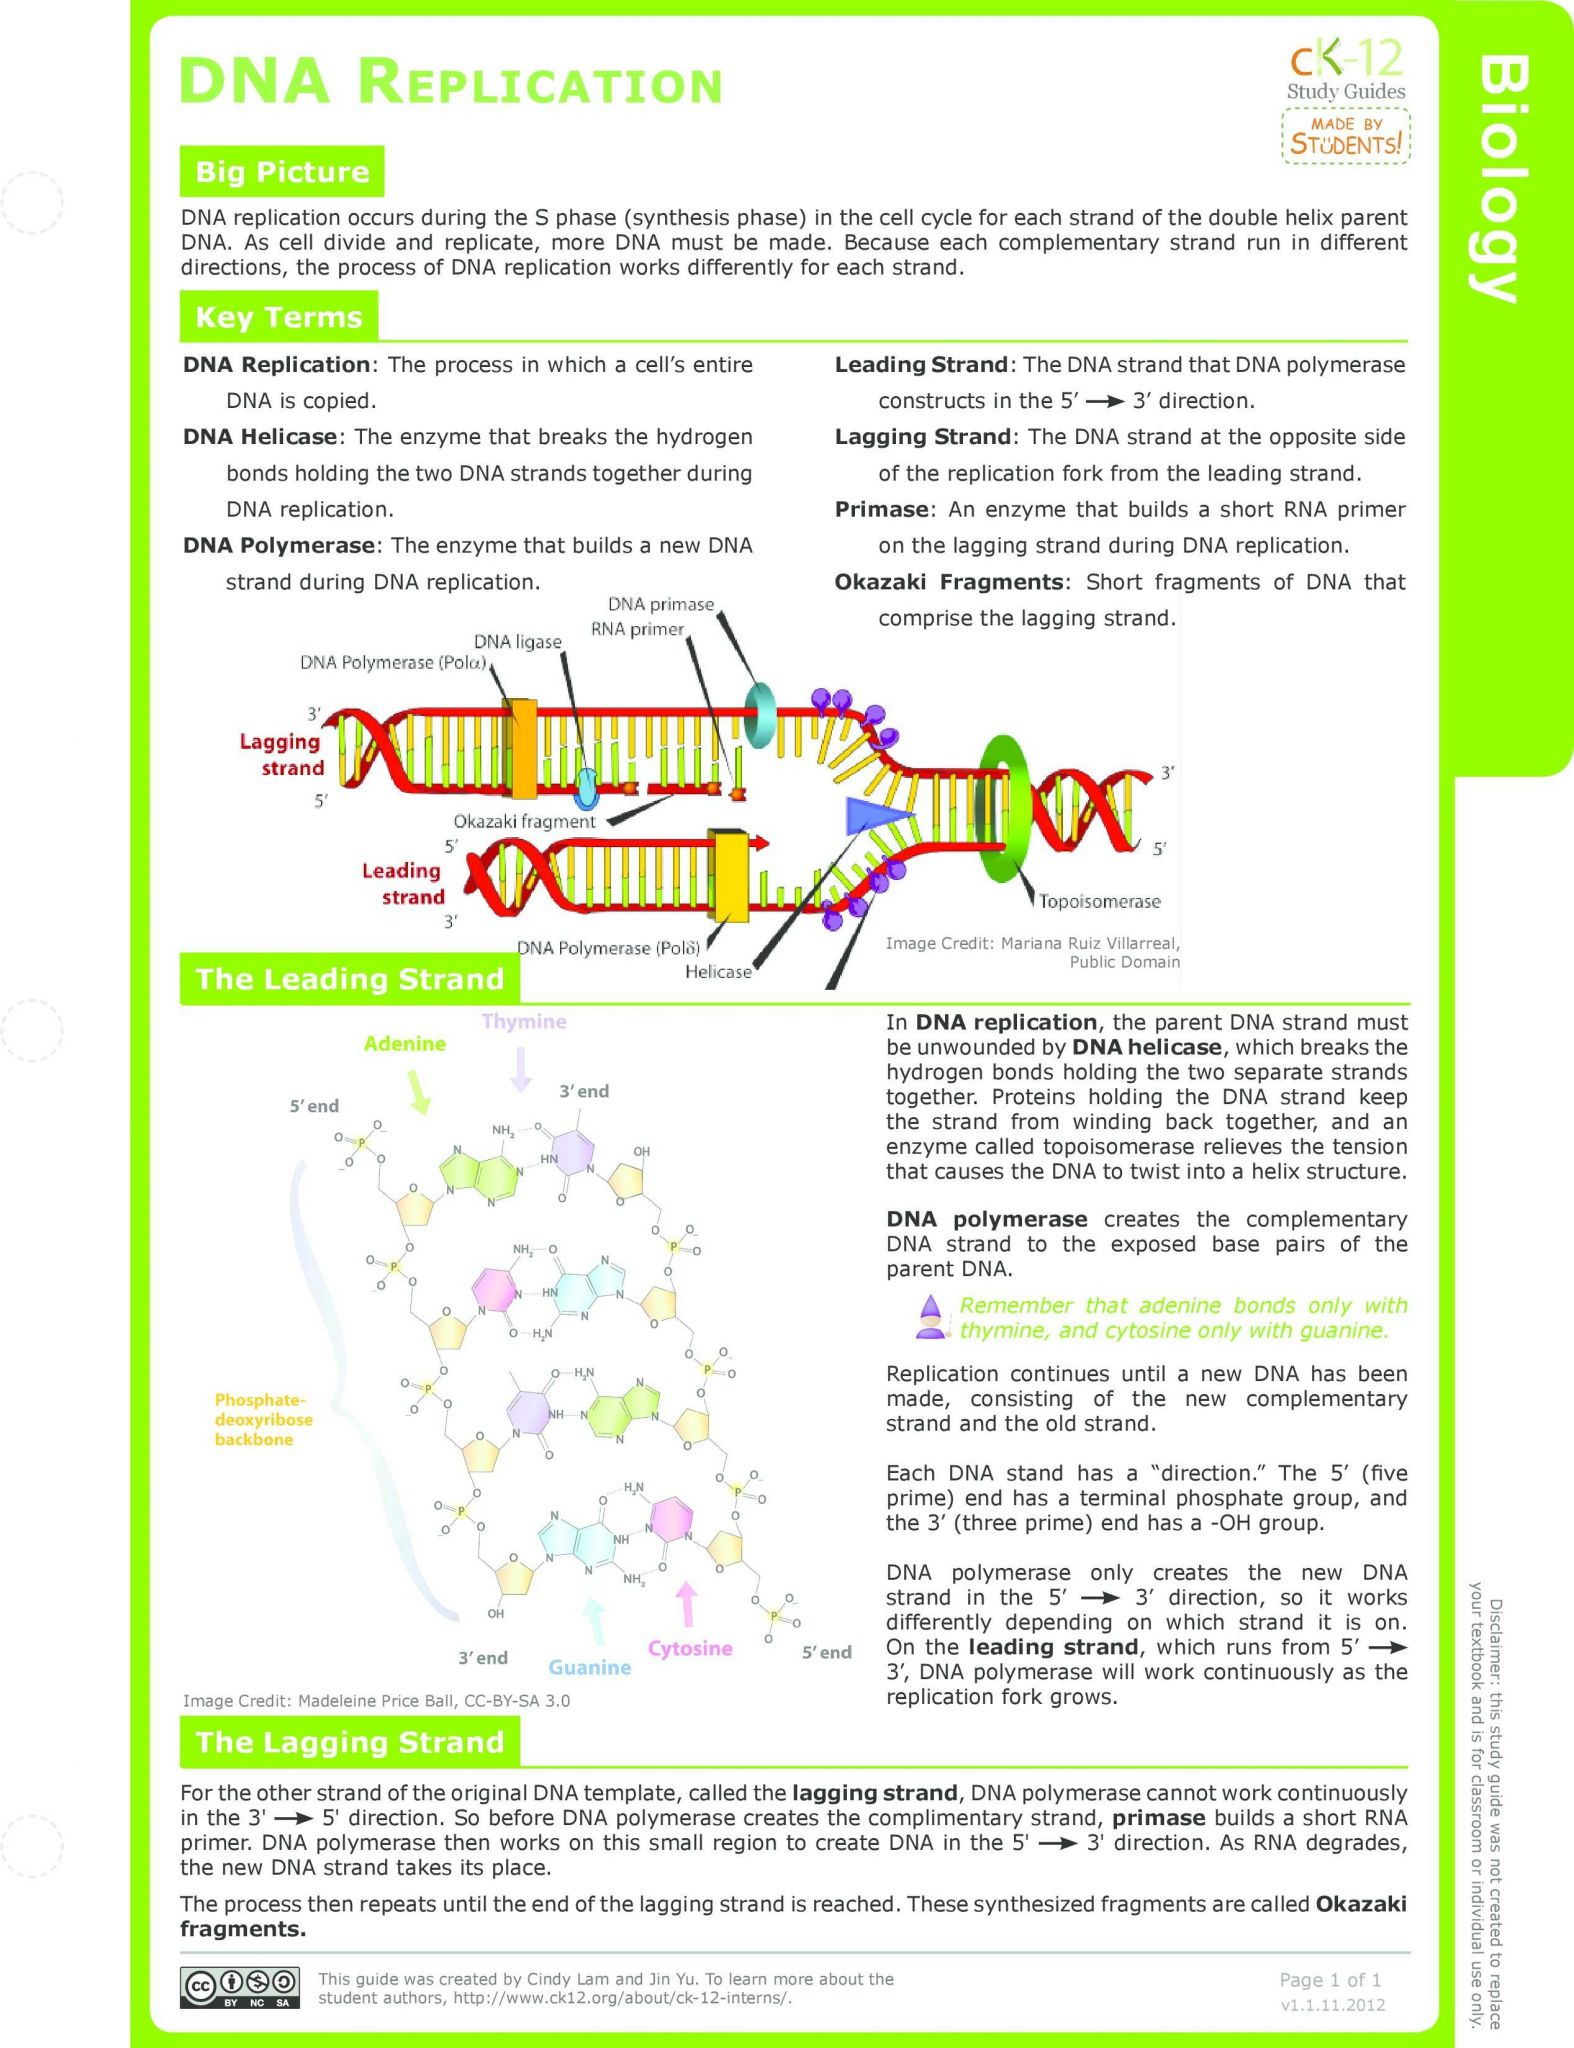 Dna Molecule and Replication Worksheet Answers as Well as 17 Luxury Dna Structure and Replication Worksheet Answers